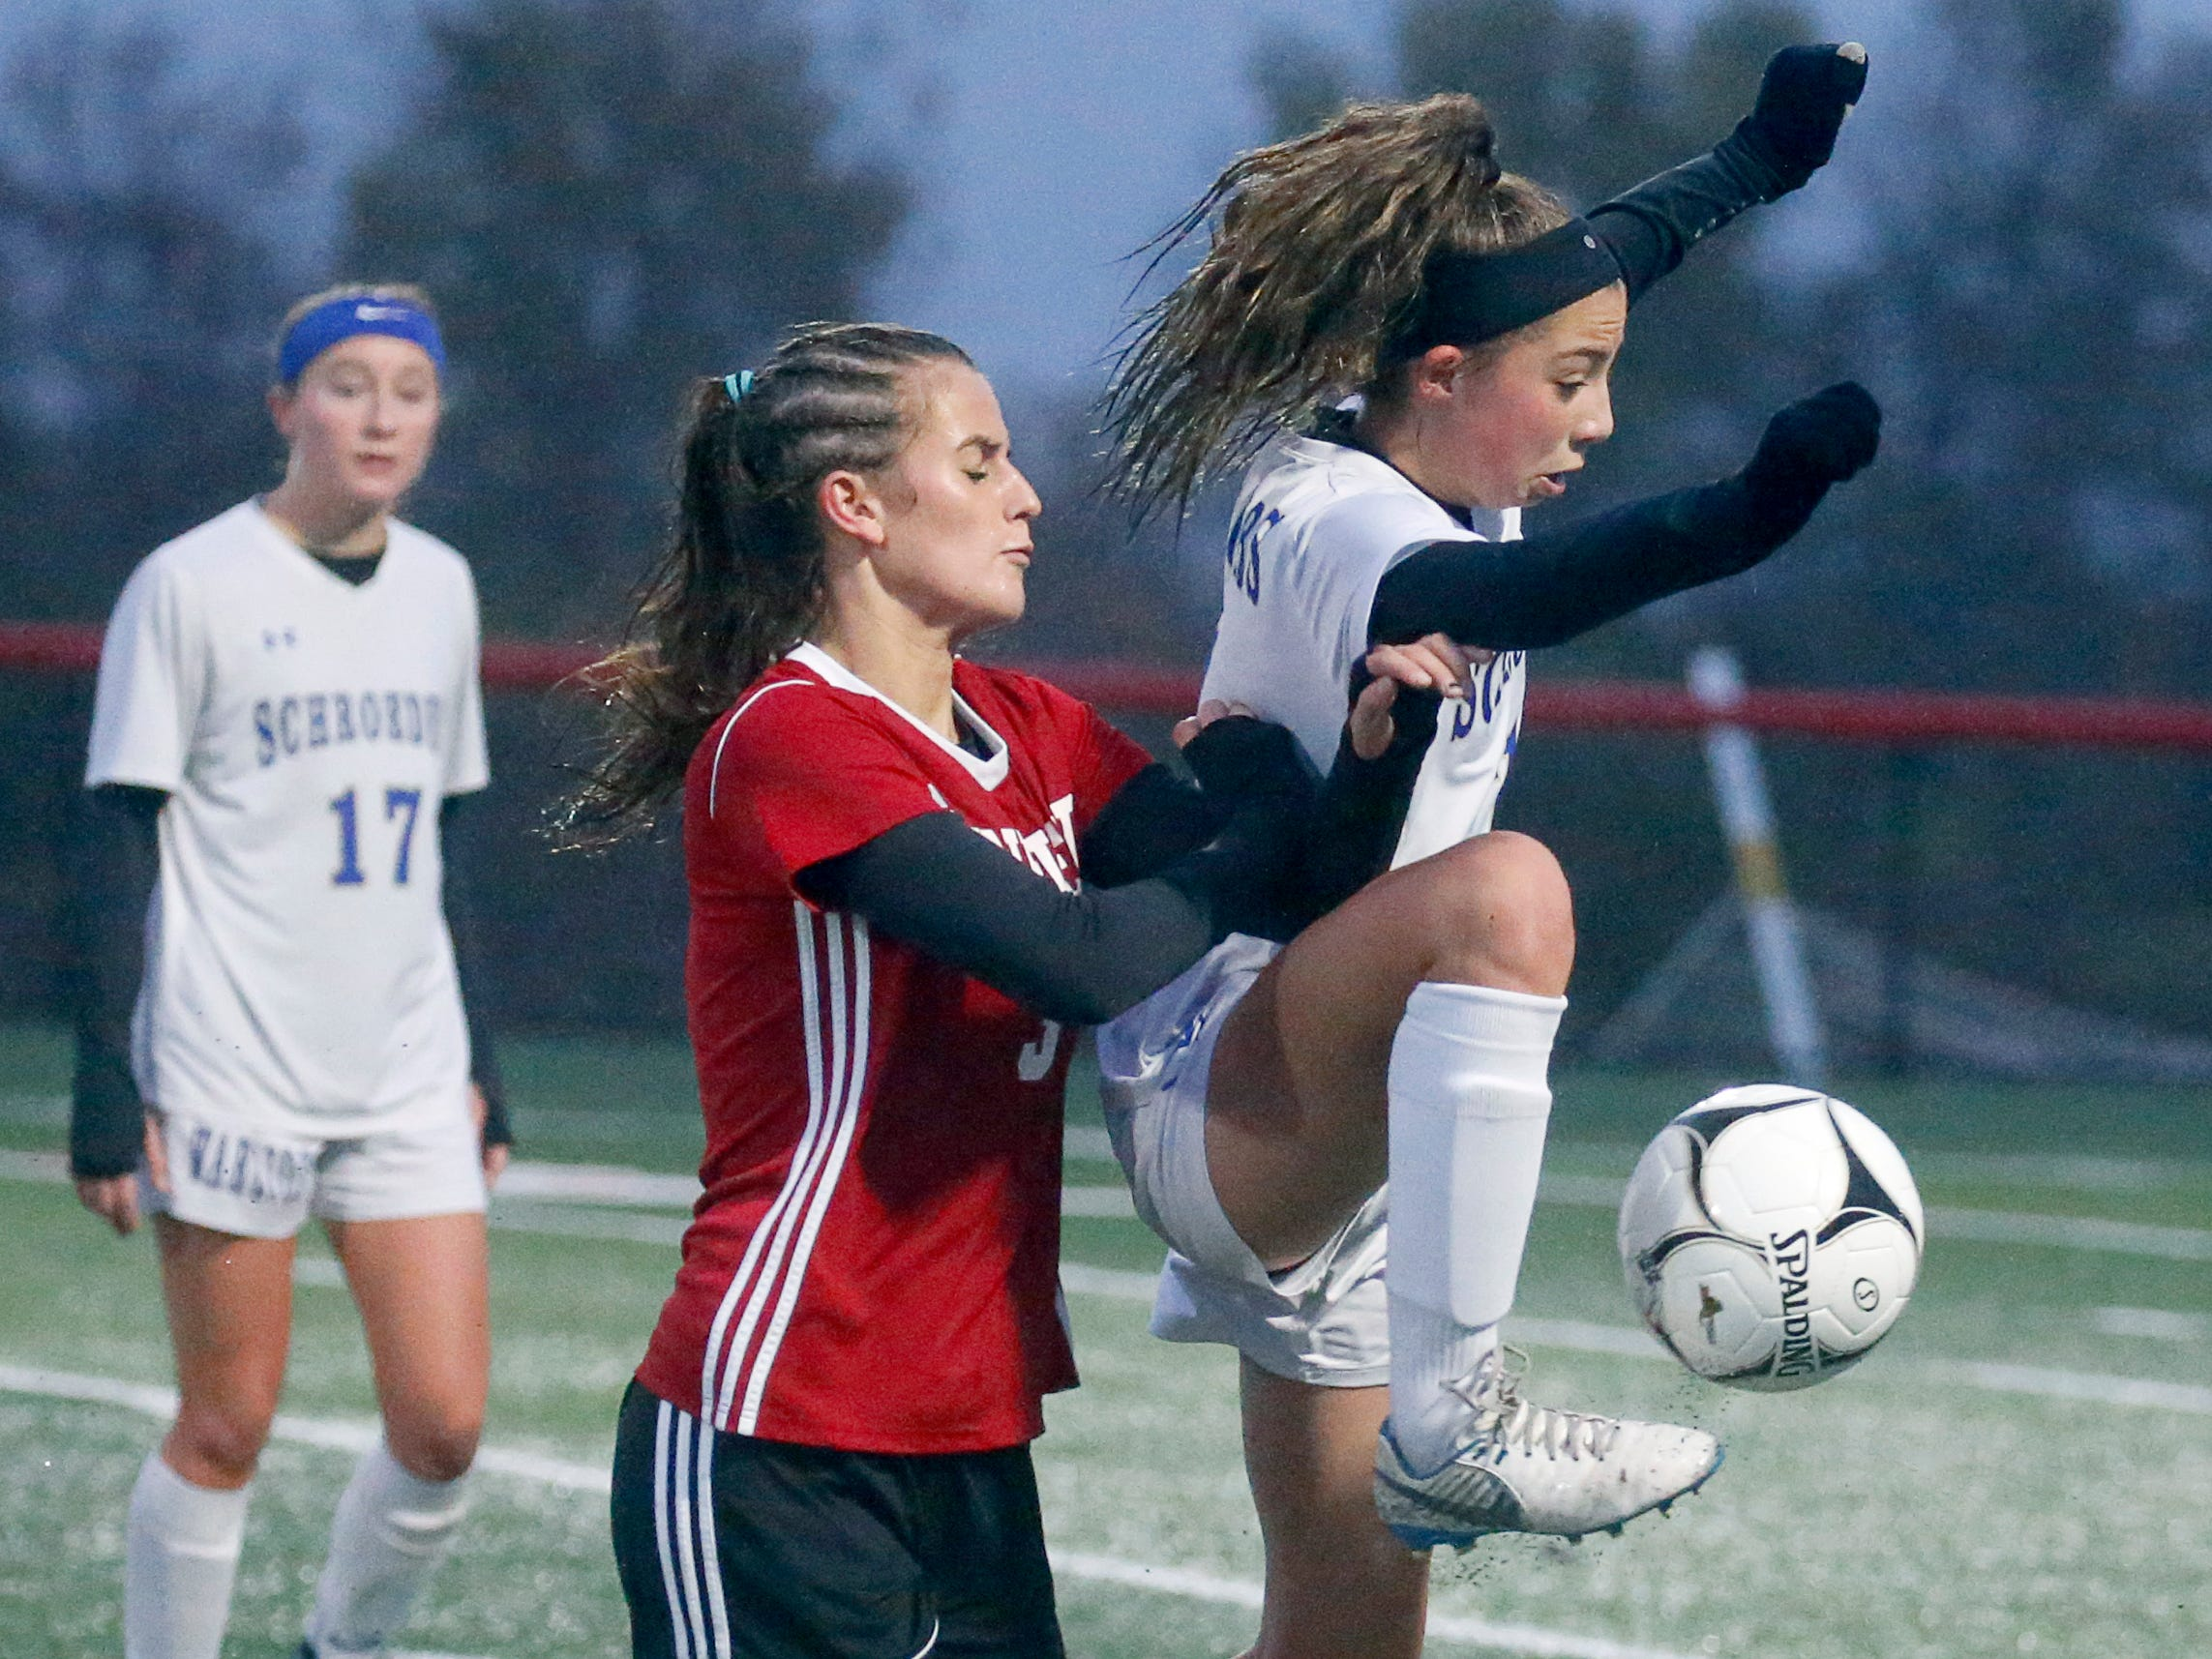 Penfield's Grace Murphy pressures Webster Schroeder's Ashley Jacobs in the first half at Canandaigua Academy.